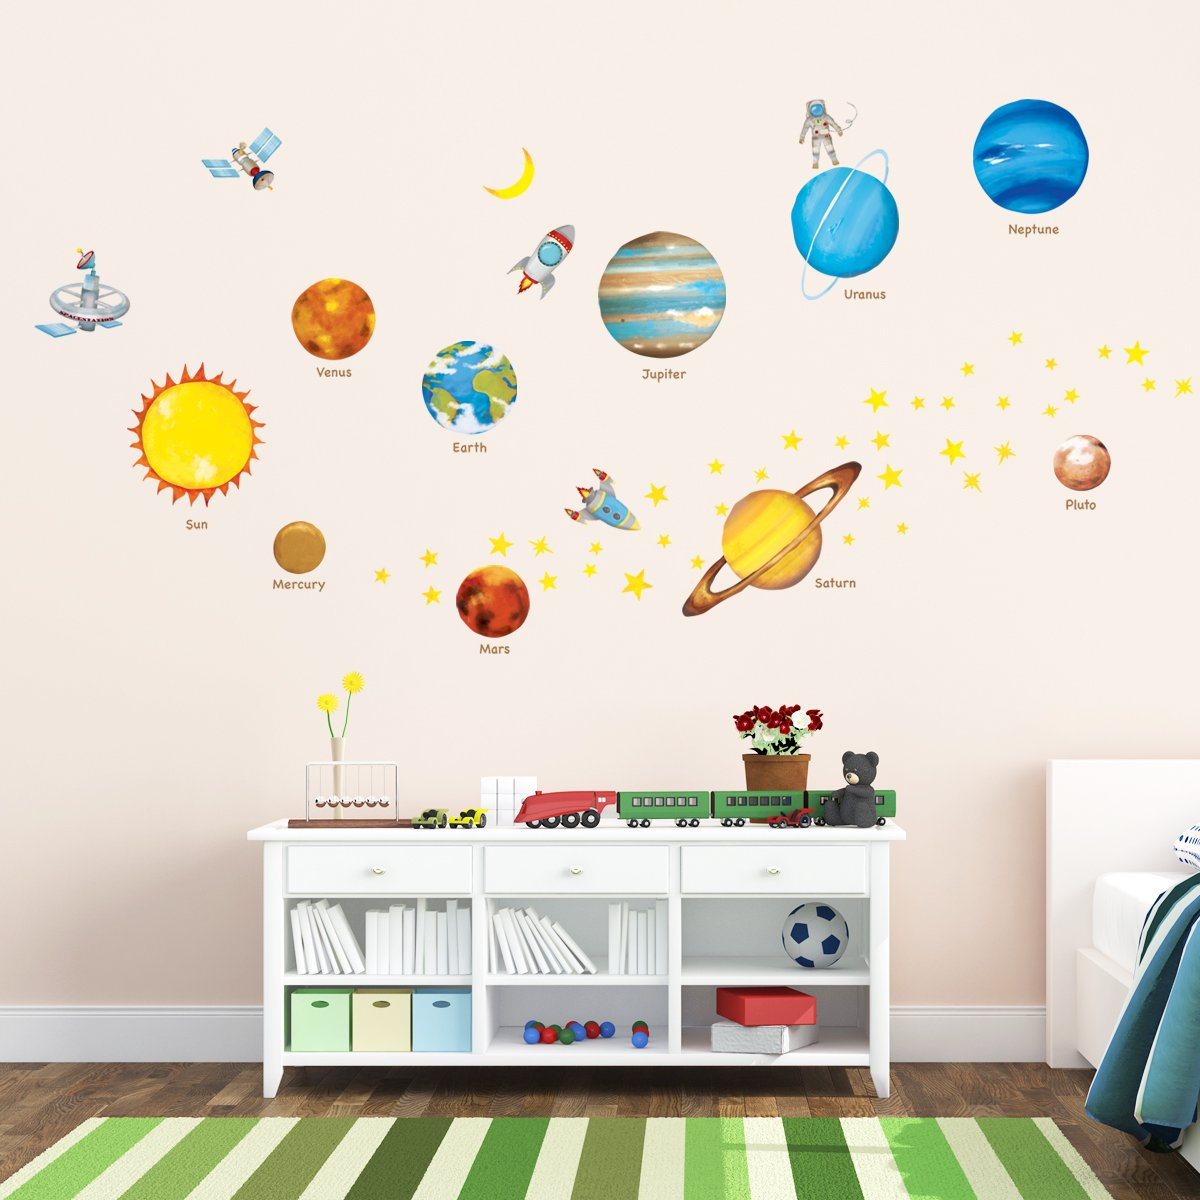 Amazon rrrljl variety animals world map wall decals sticker decowall dw 1307 planets in the space kids wall decals wall stickers peel and stick amipublicfo Images